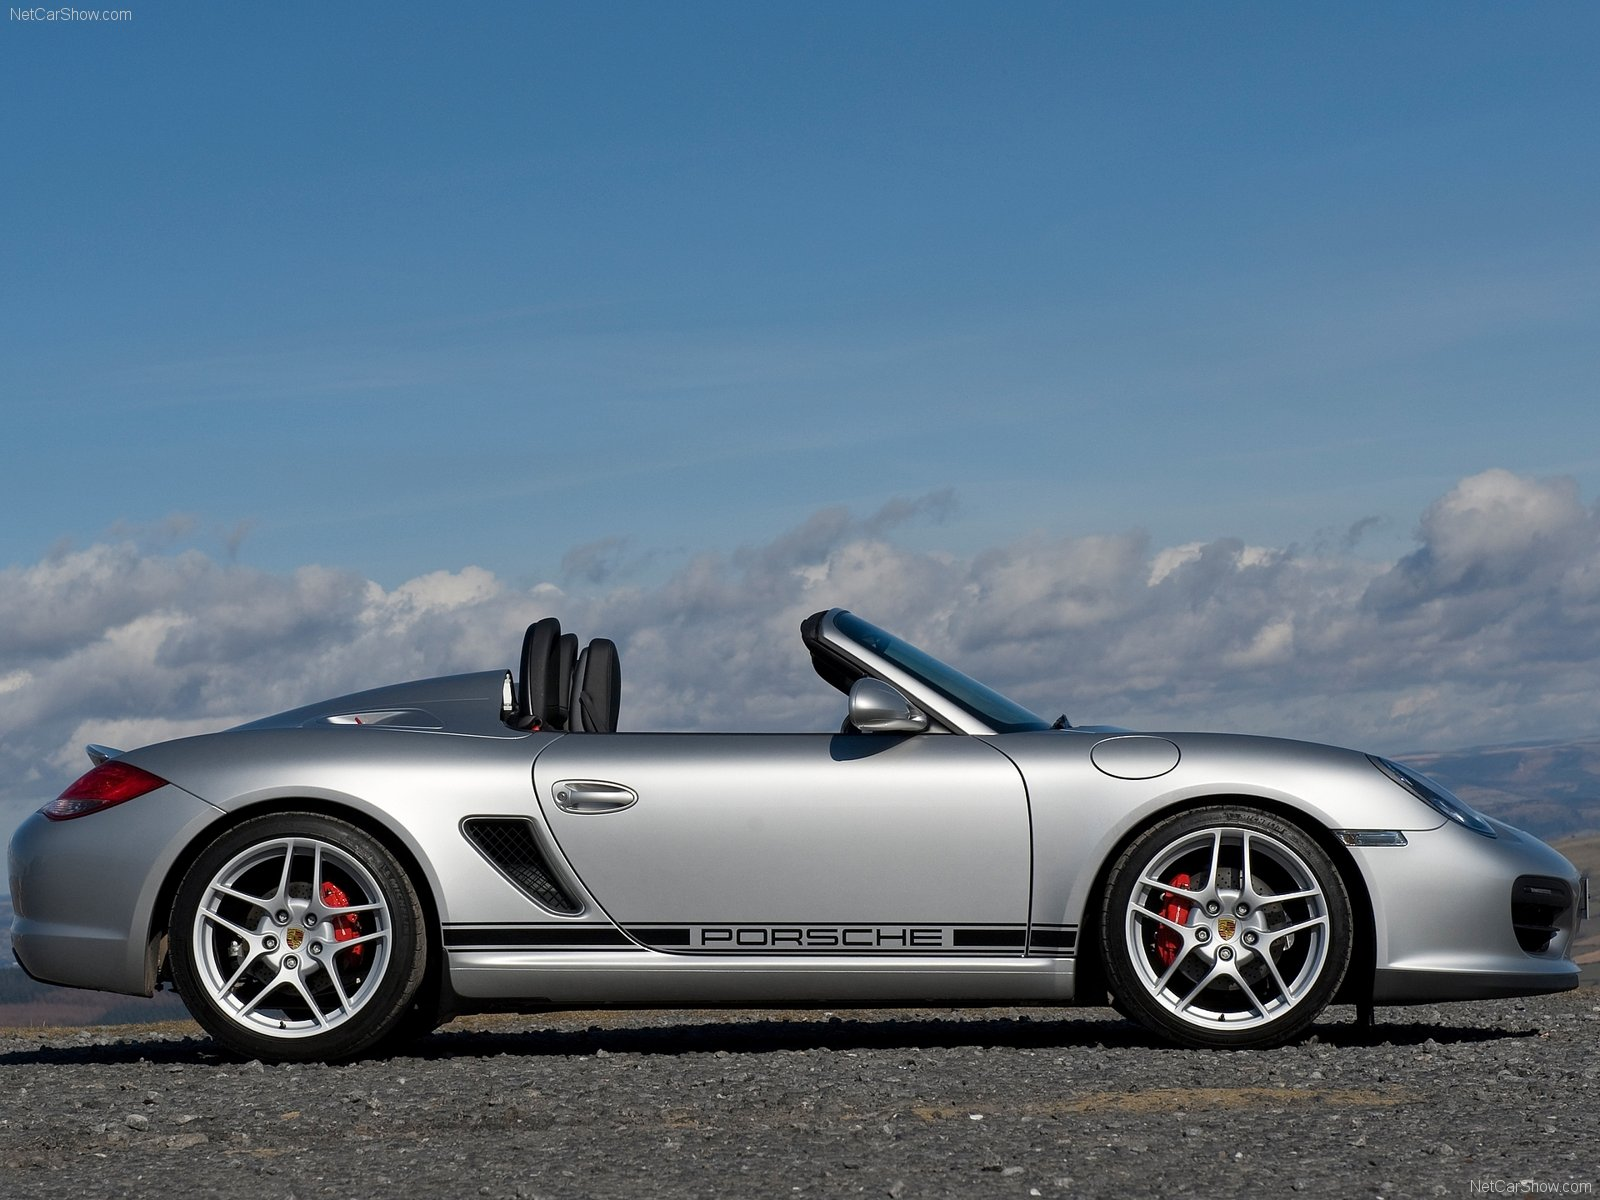 2010 Porsche Boxster Spyder Wallpapers